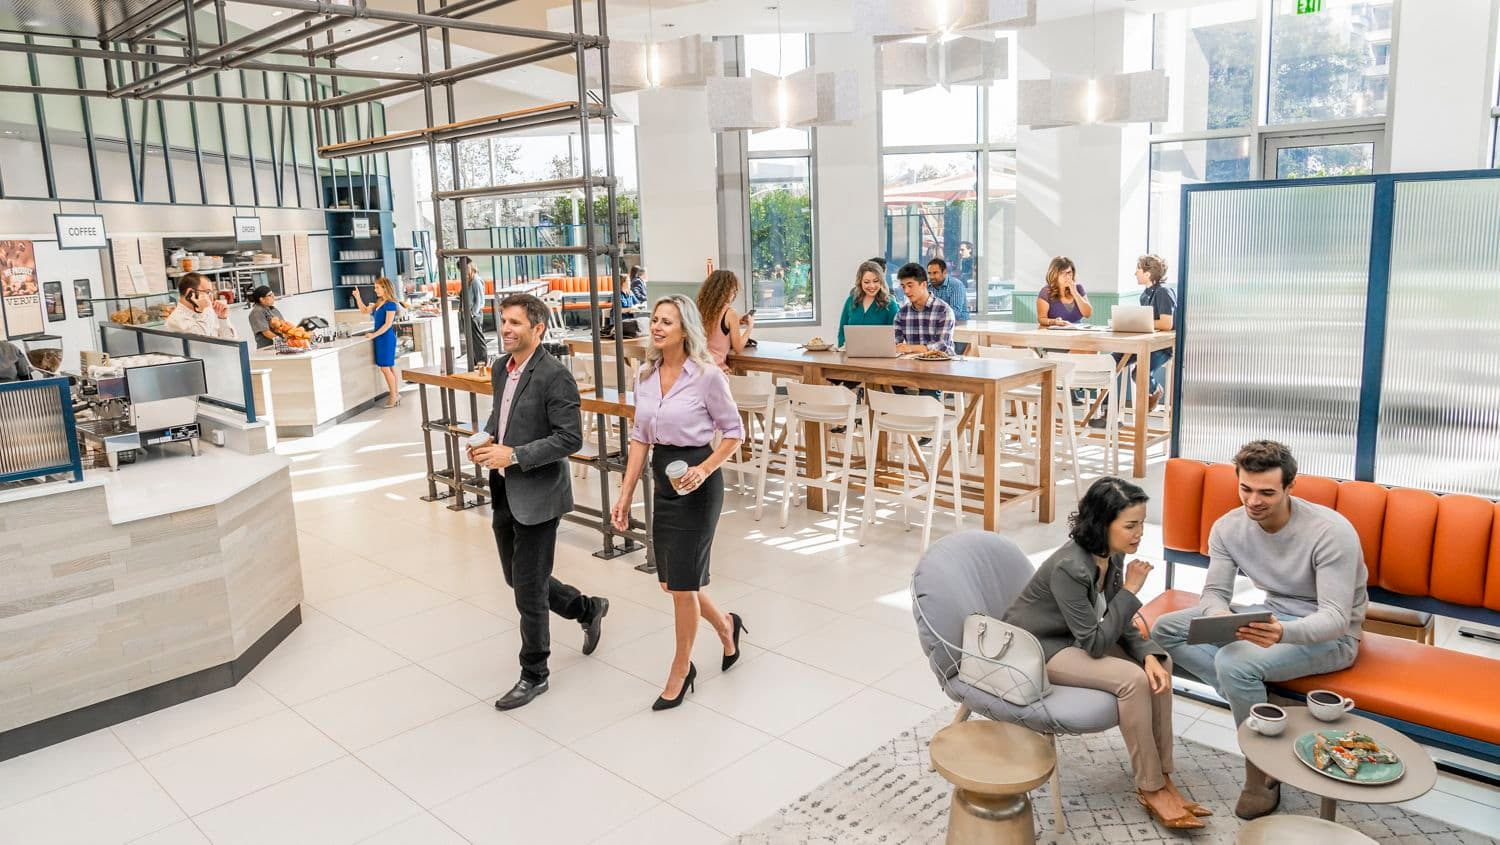 Interior view of people at Pacific Kitchen Market at 2121 Avenue of the Stars Office Properties in Los Angeles, CA.